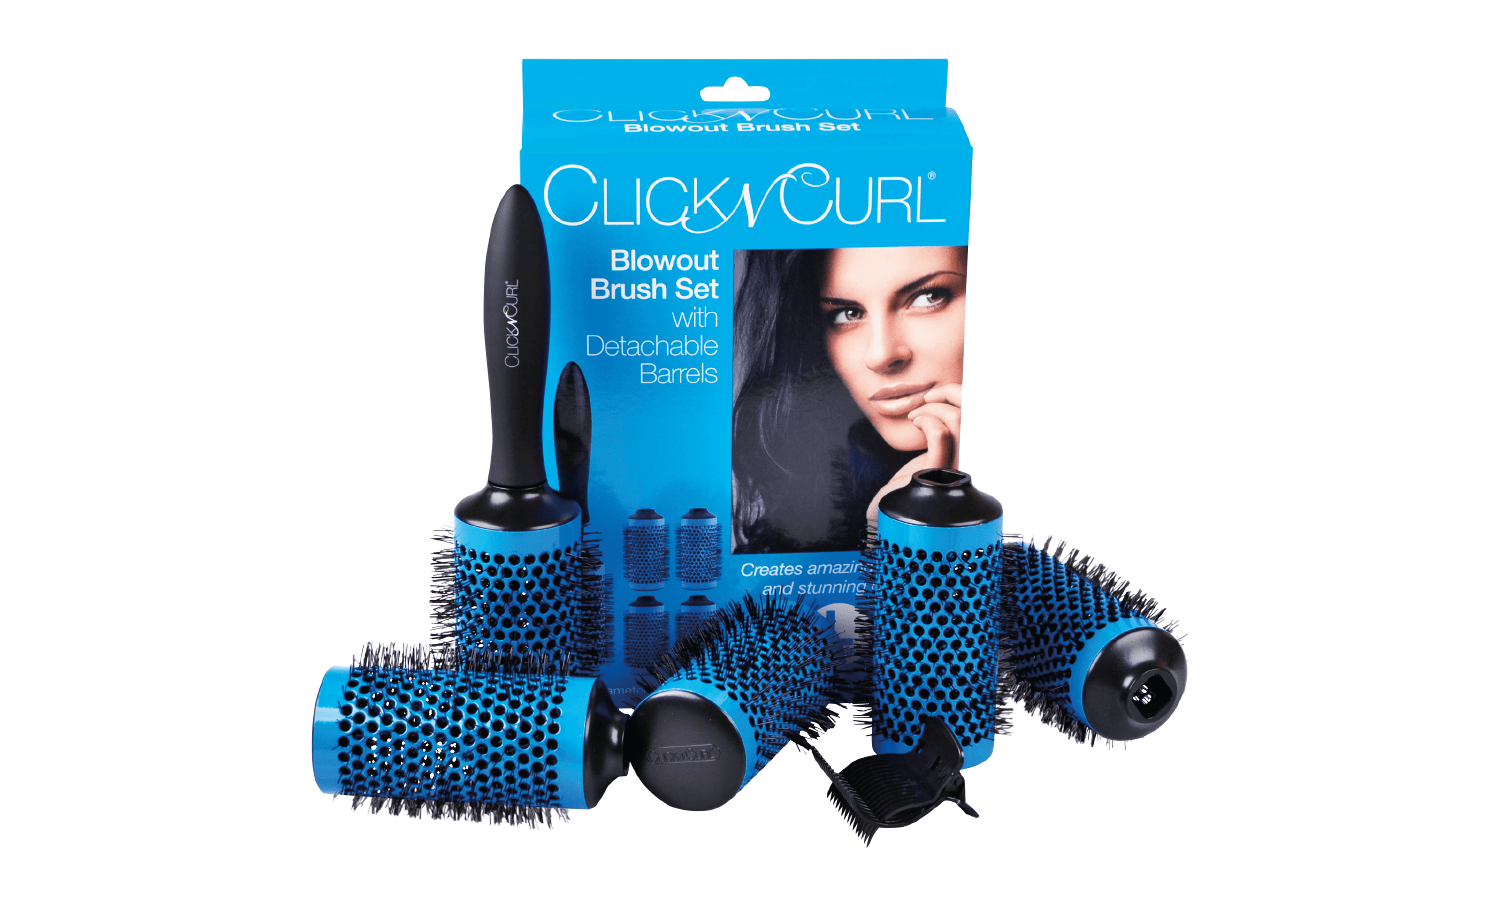 A set of Large Blue Click n Curl Blowout Brush Full Set